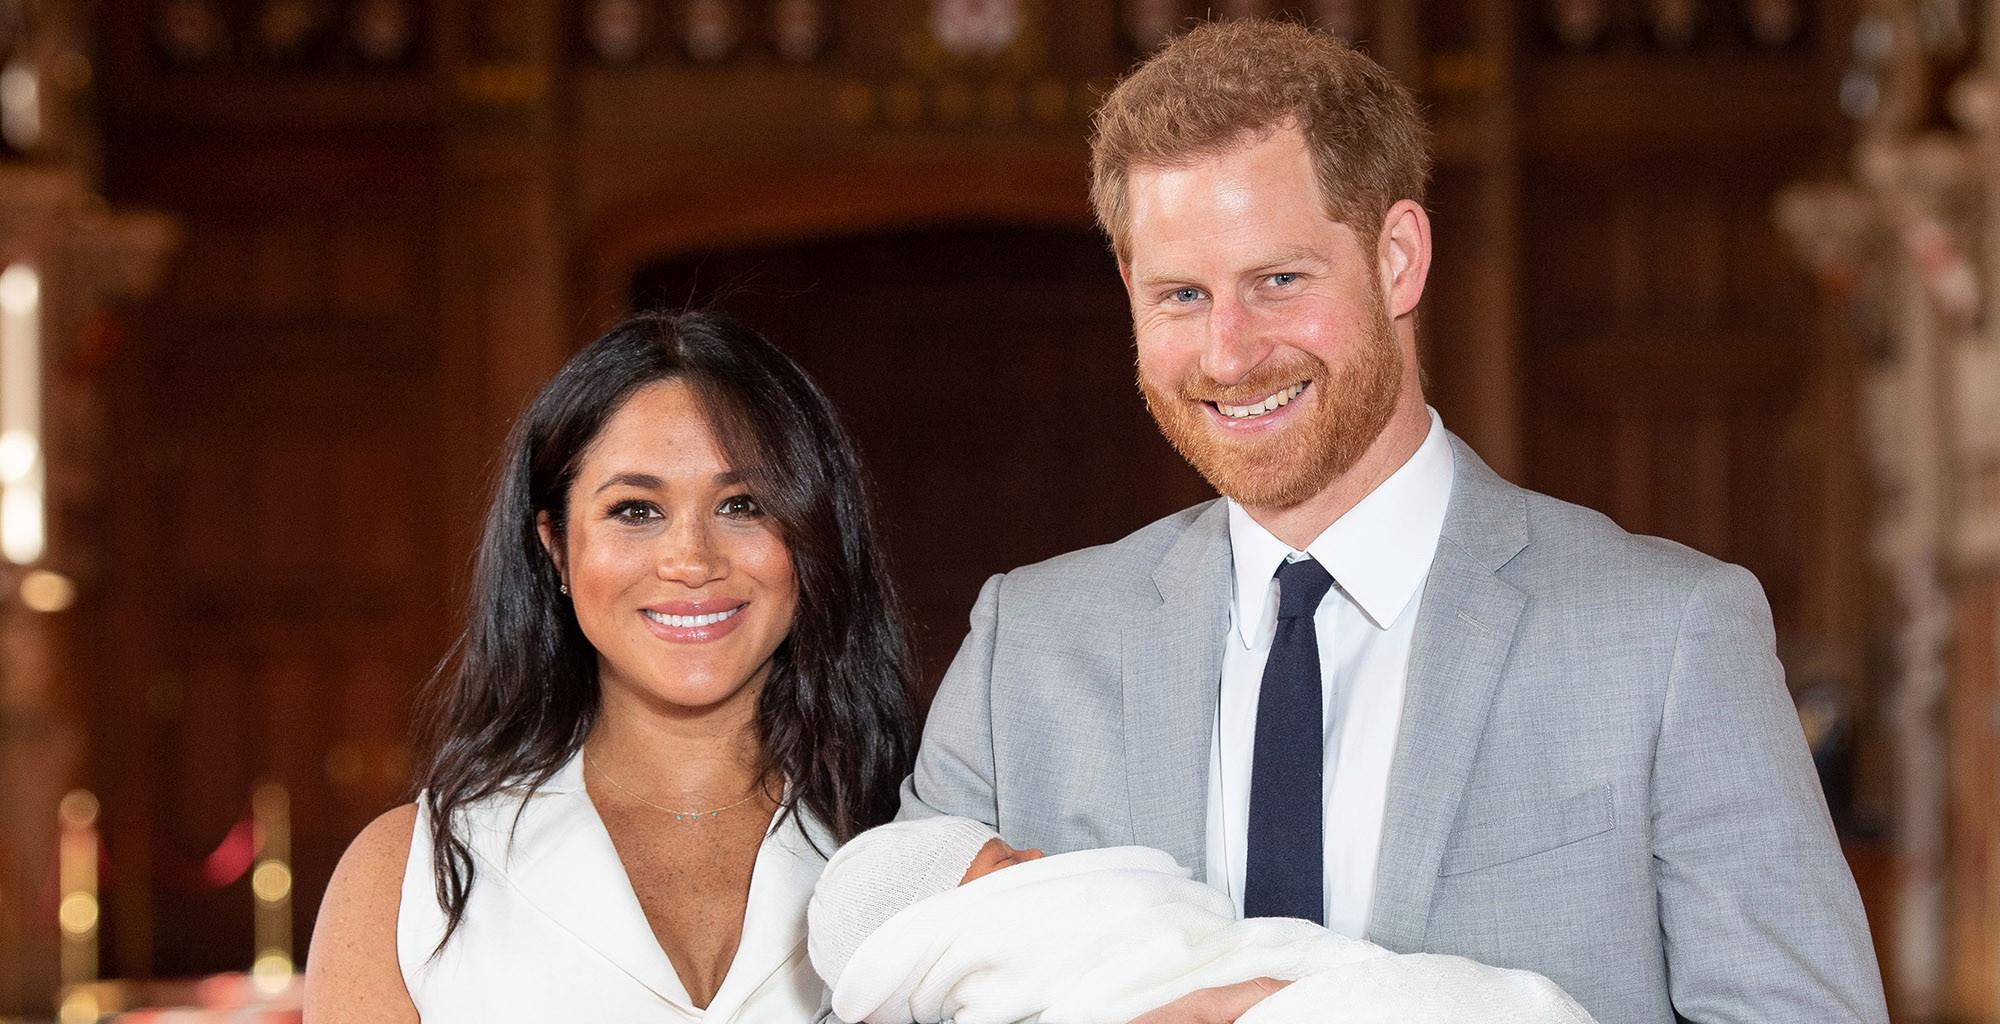 Prince Harry Gushes Over Son Archie - Says He 'Can't Imagine' Life Without Him